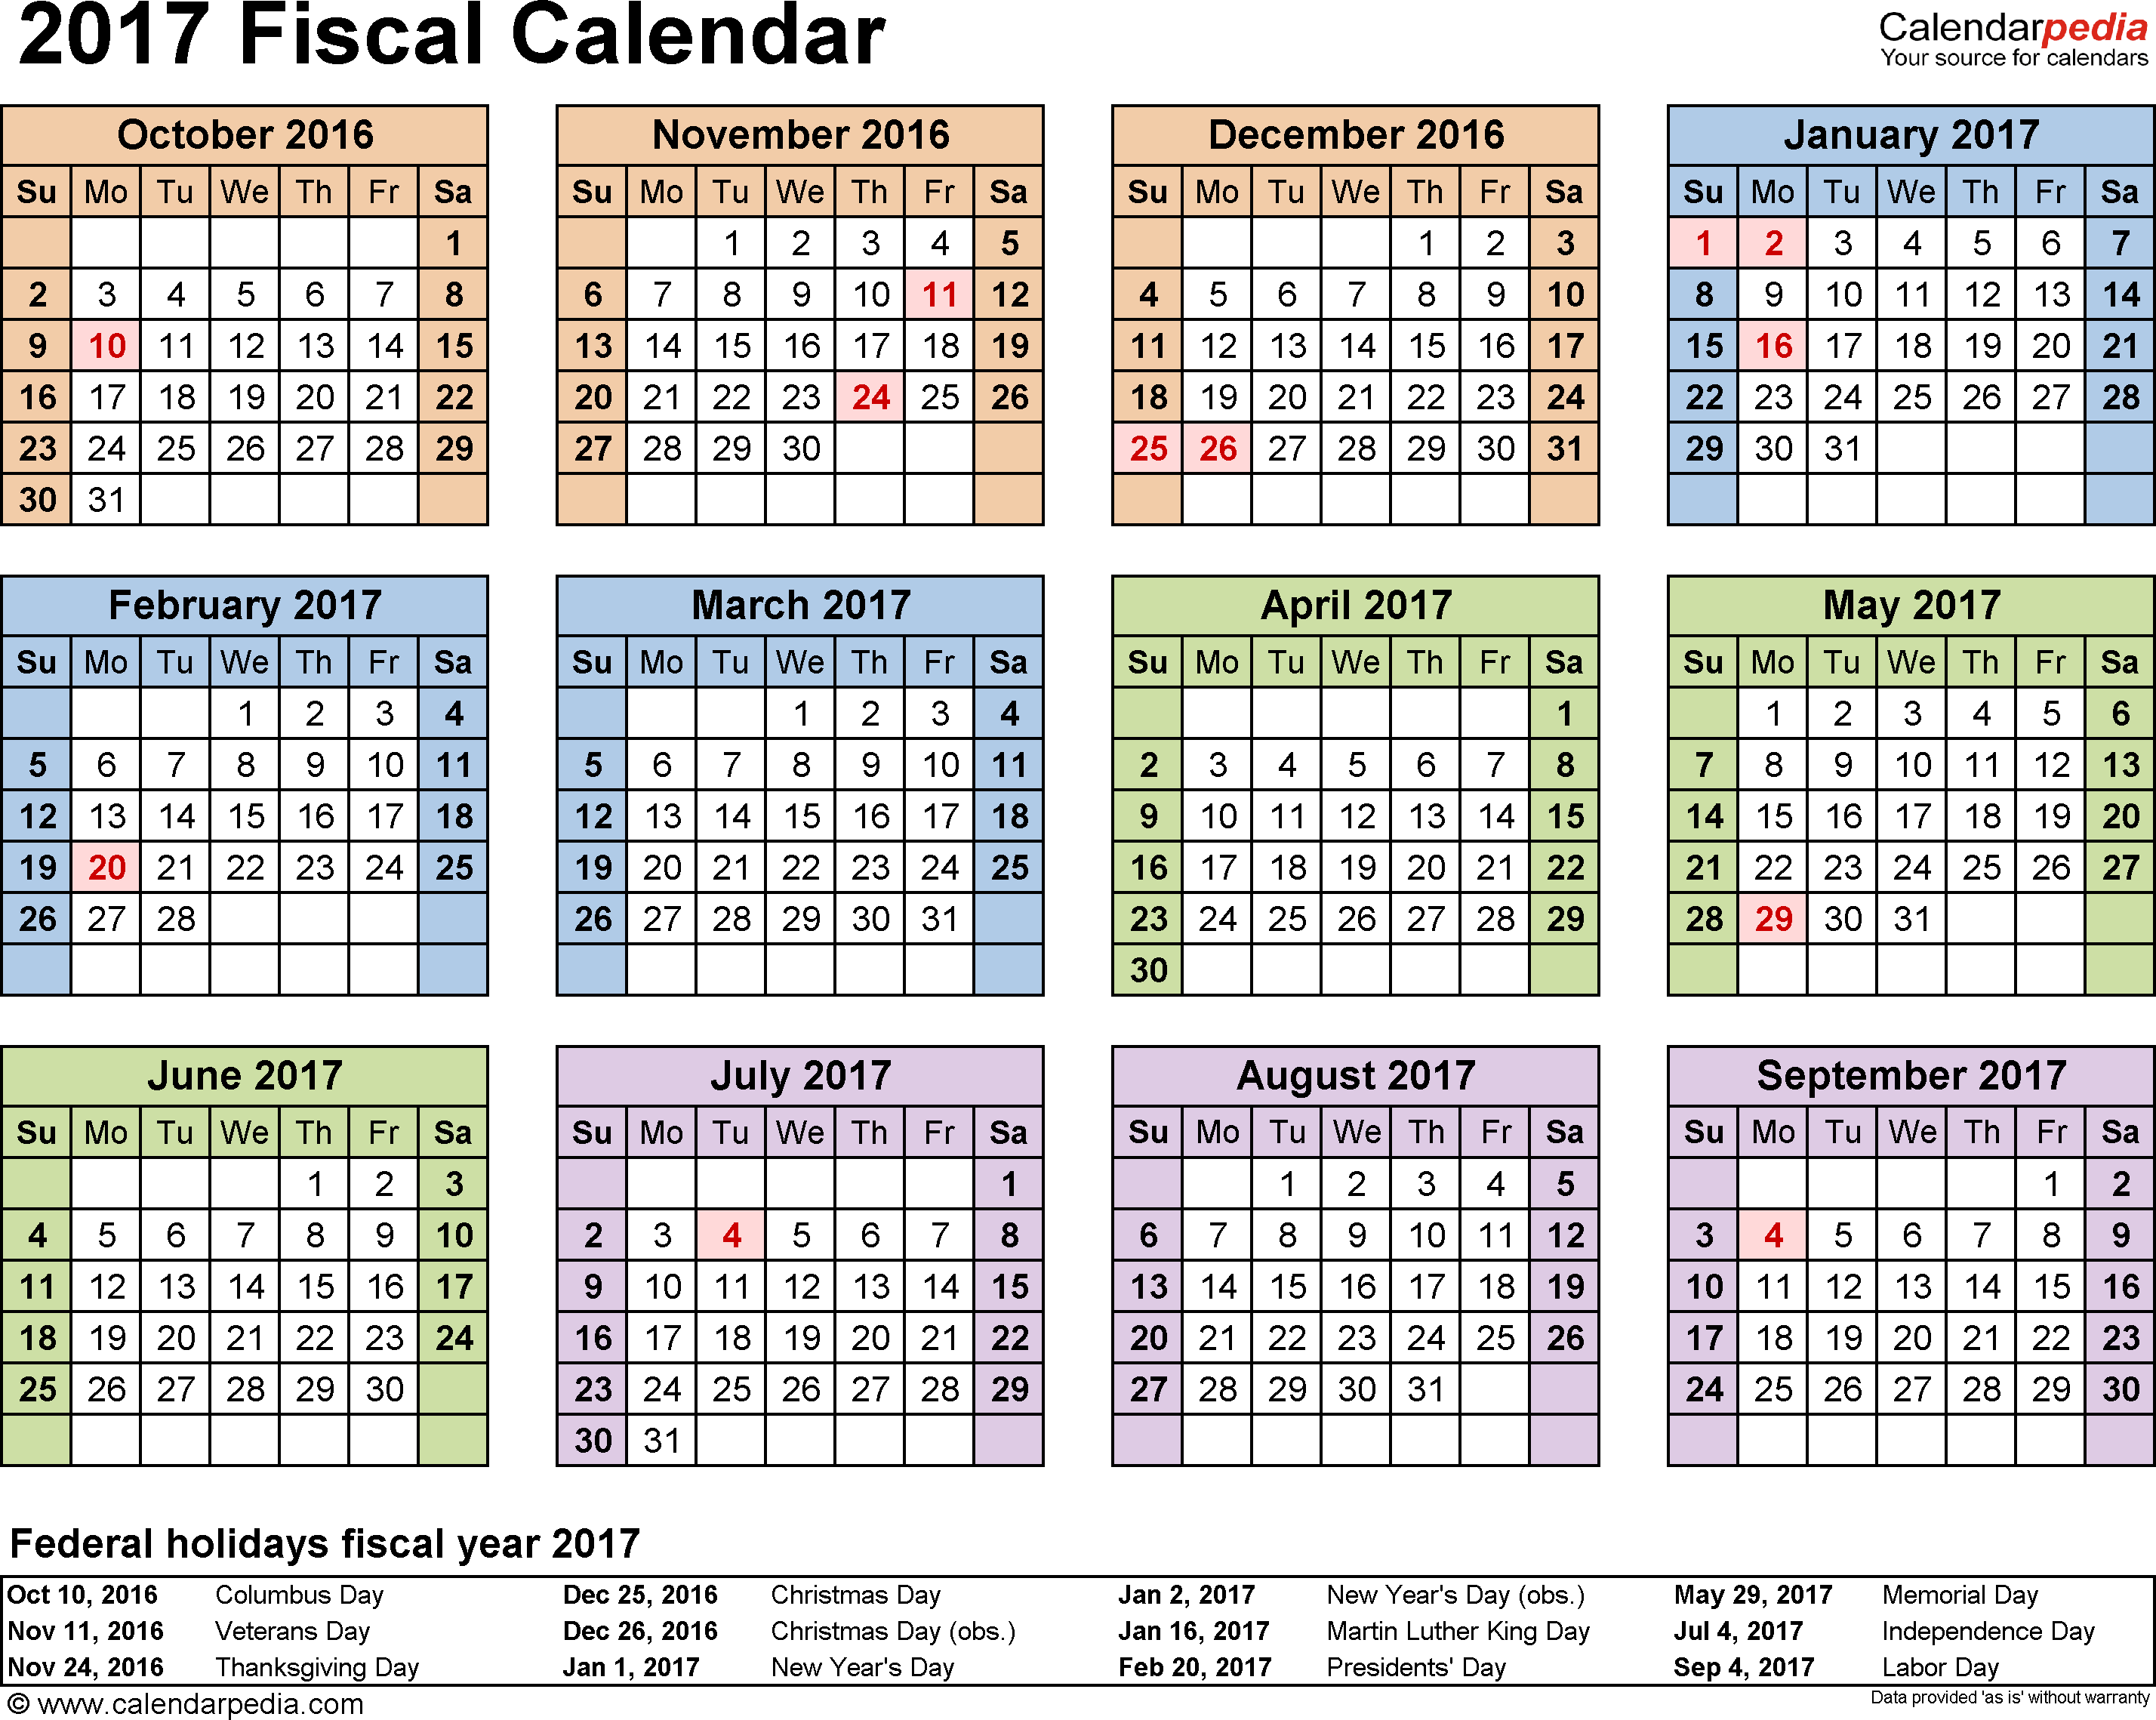 Template 4: Fiscal year calendar 2017 for Word, landscape orientation, year at a glance, 1 page